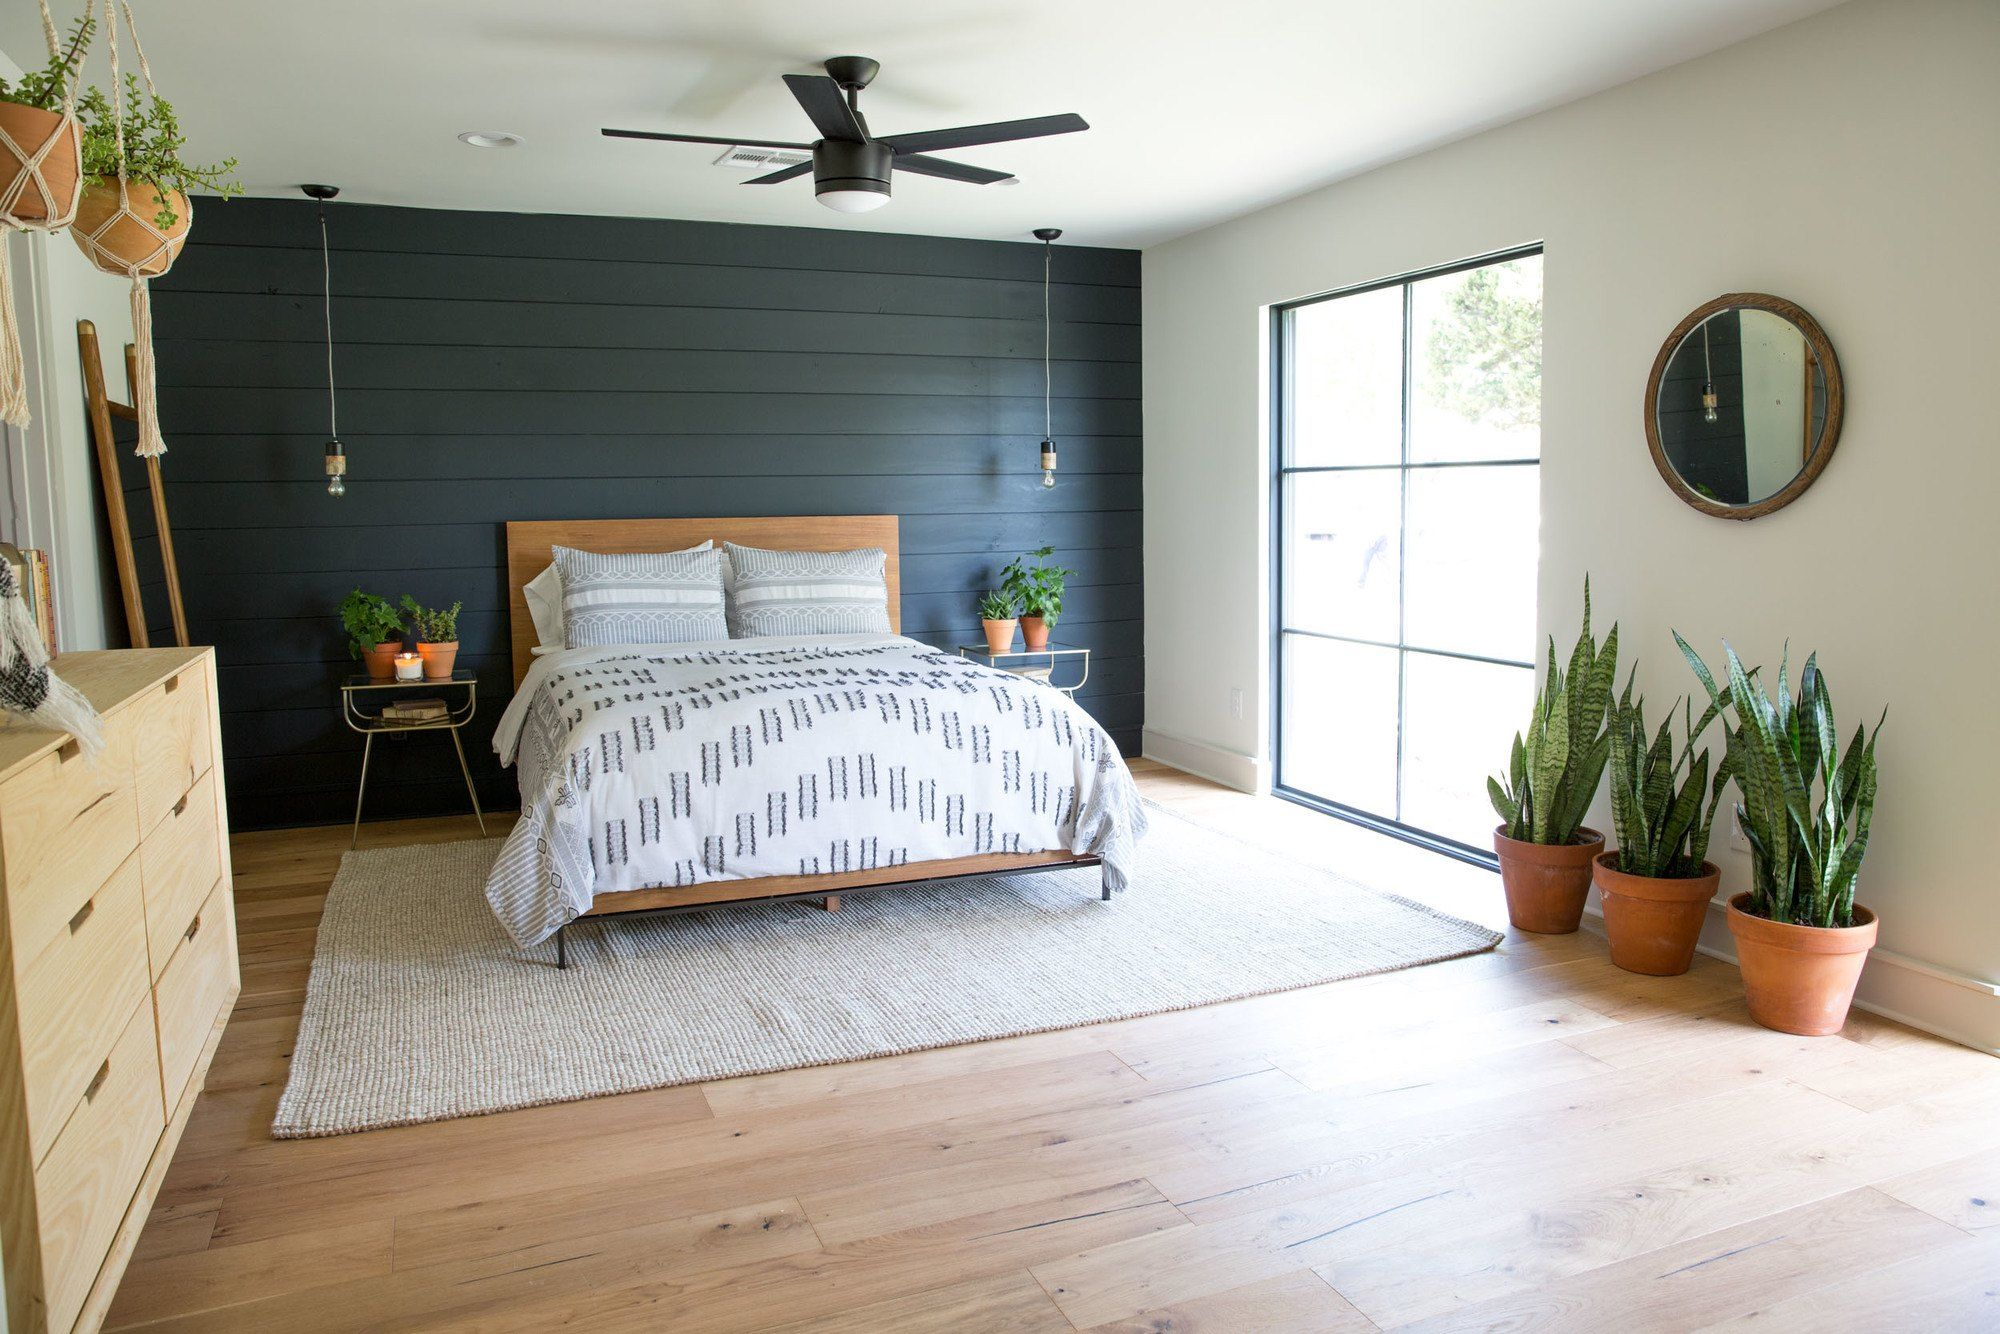 A Wall Of Black Shiplap Took Classic Look And Made It Fit With The Feel Rest Wixsom Home